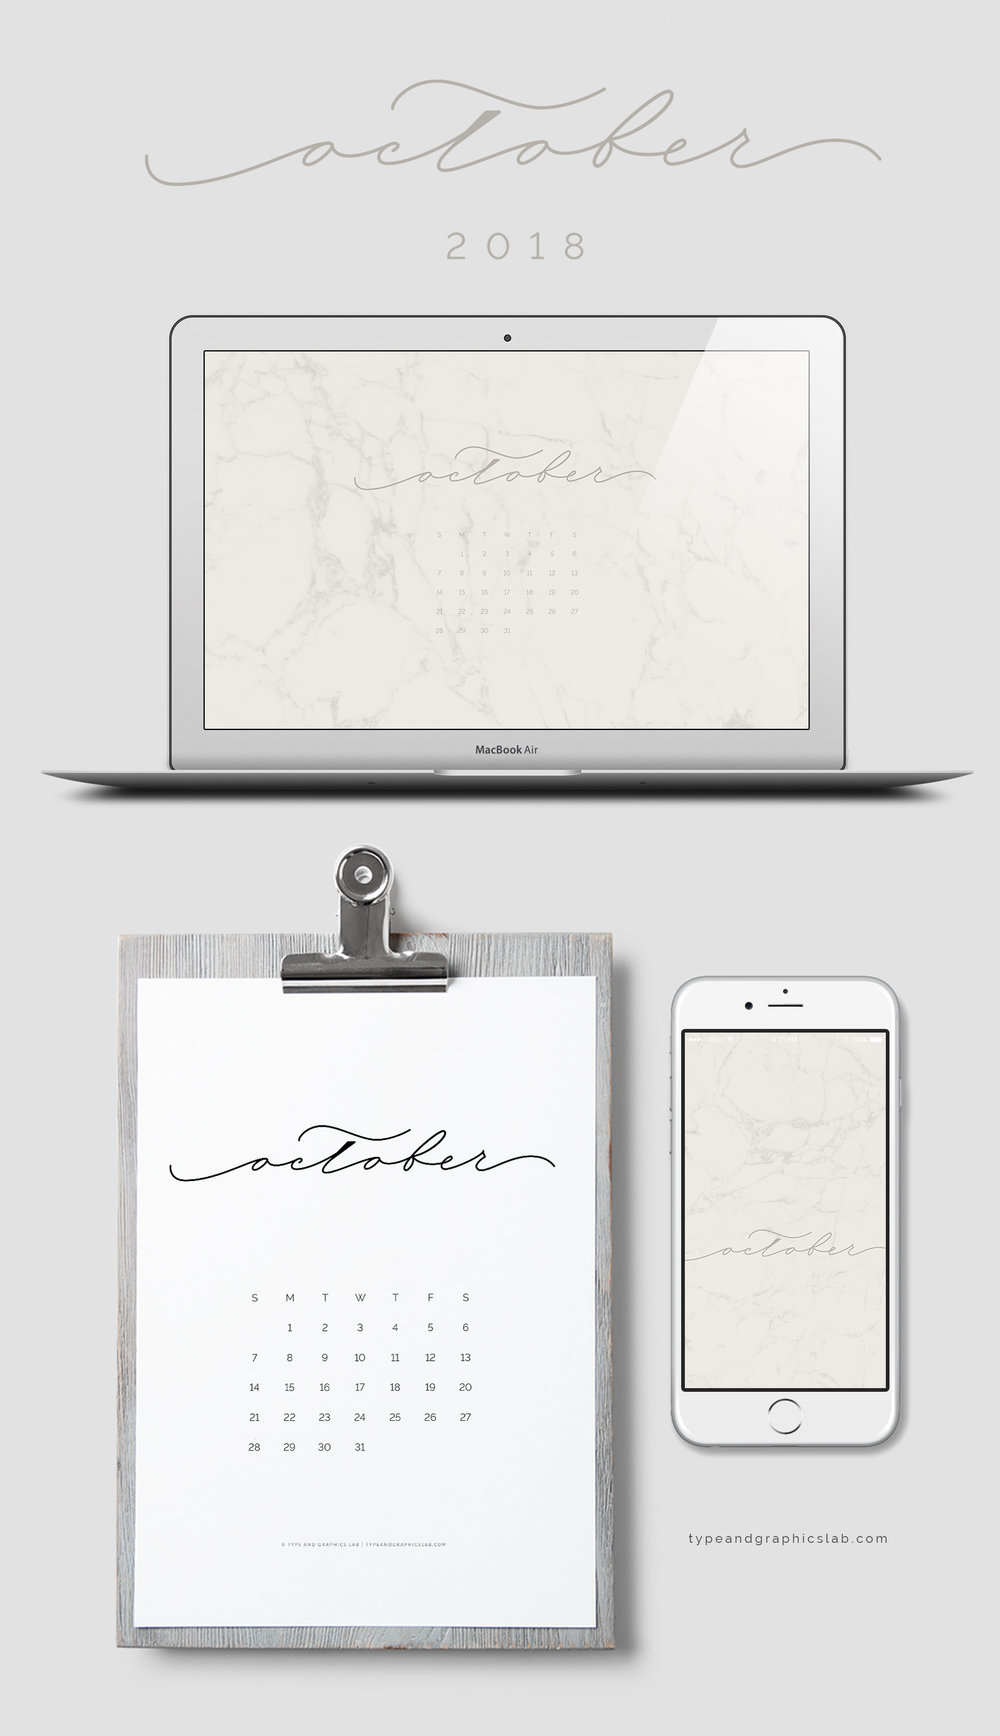 Download free desktop, mobile, and printable calendar for October 2018 | © typeandgraphicslab.com | For personal use only